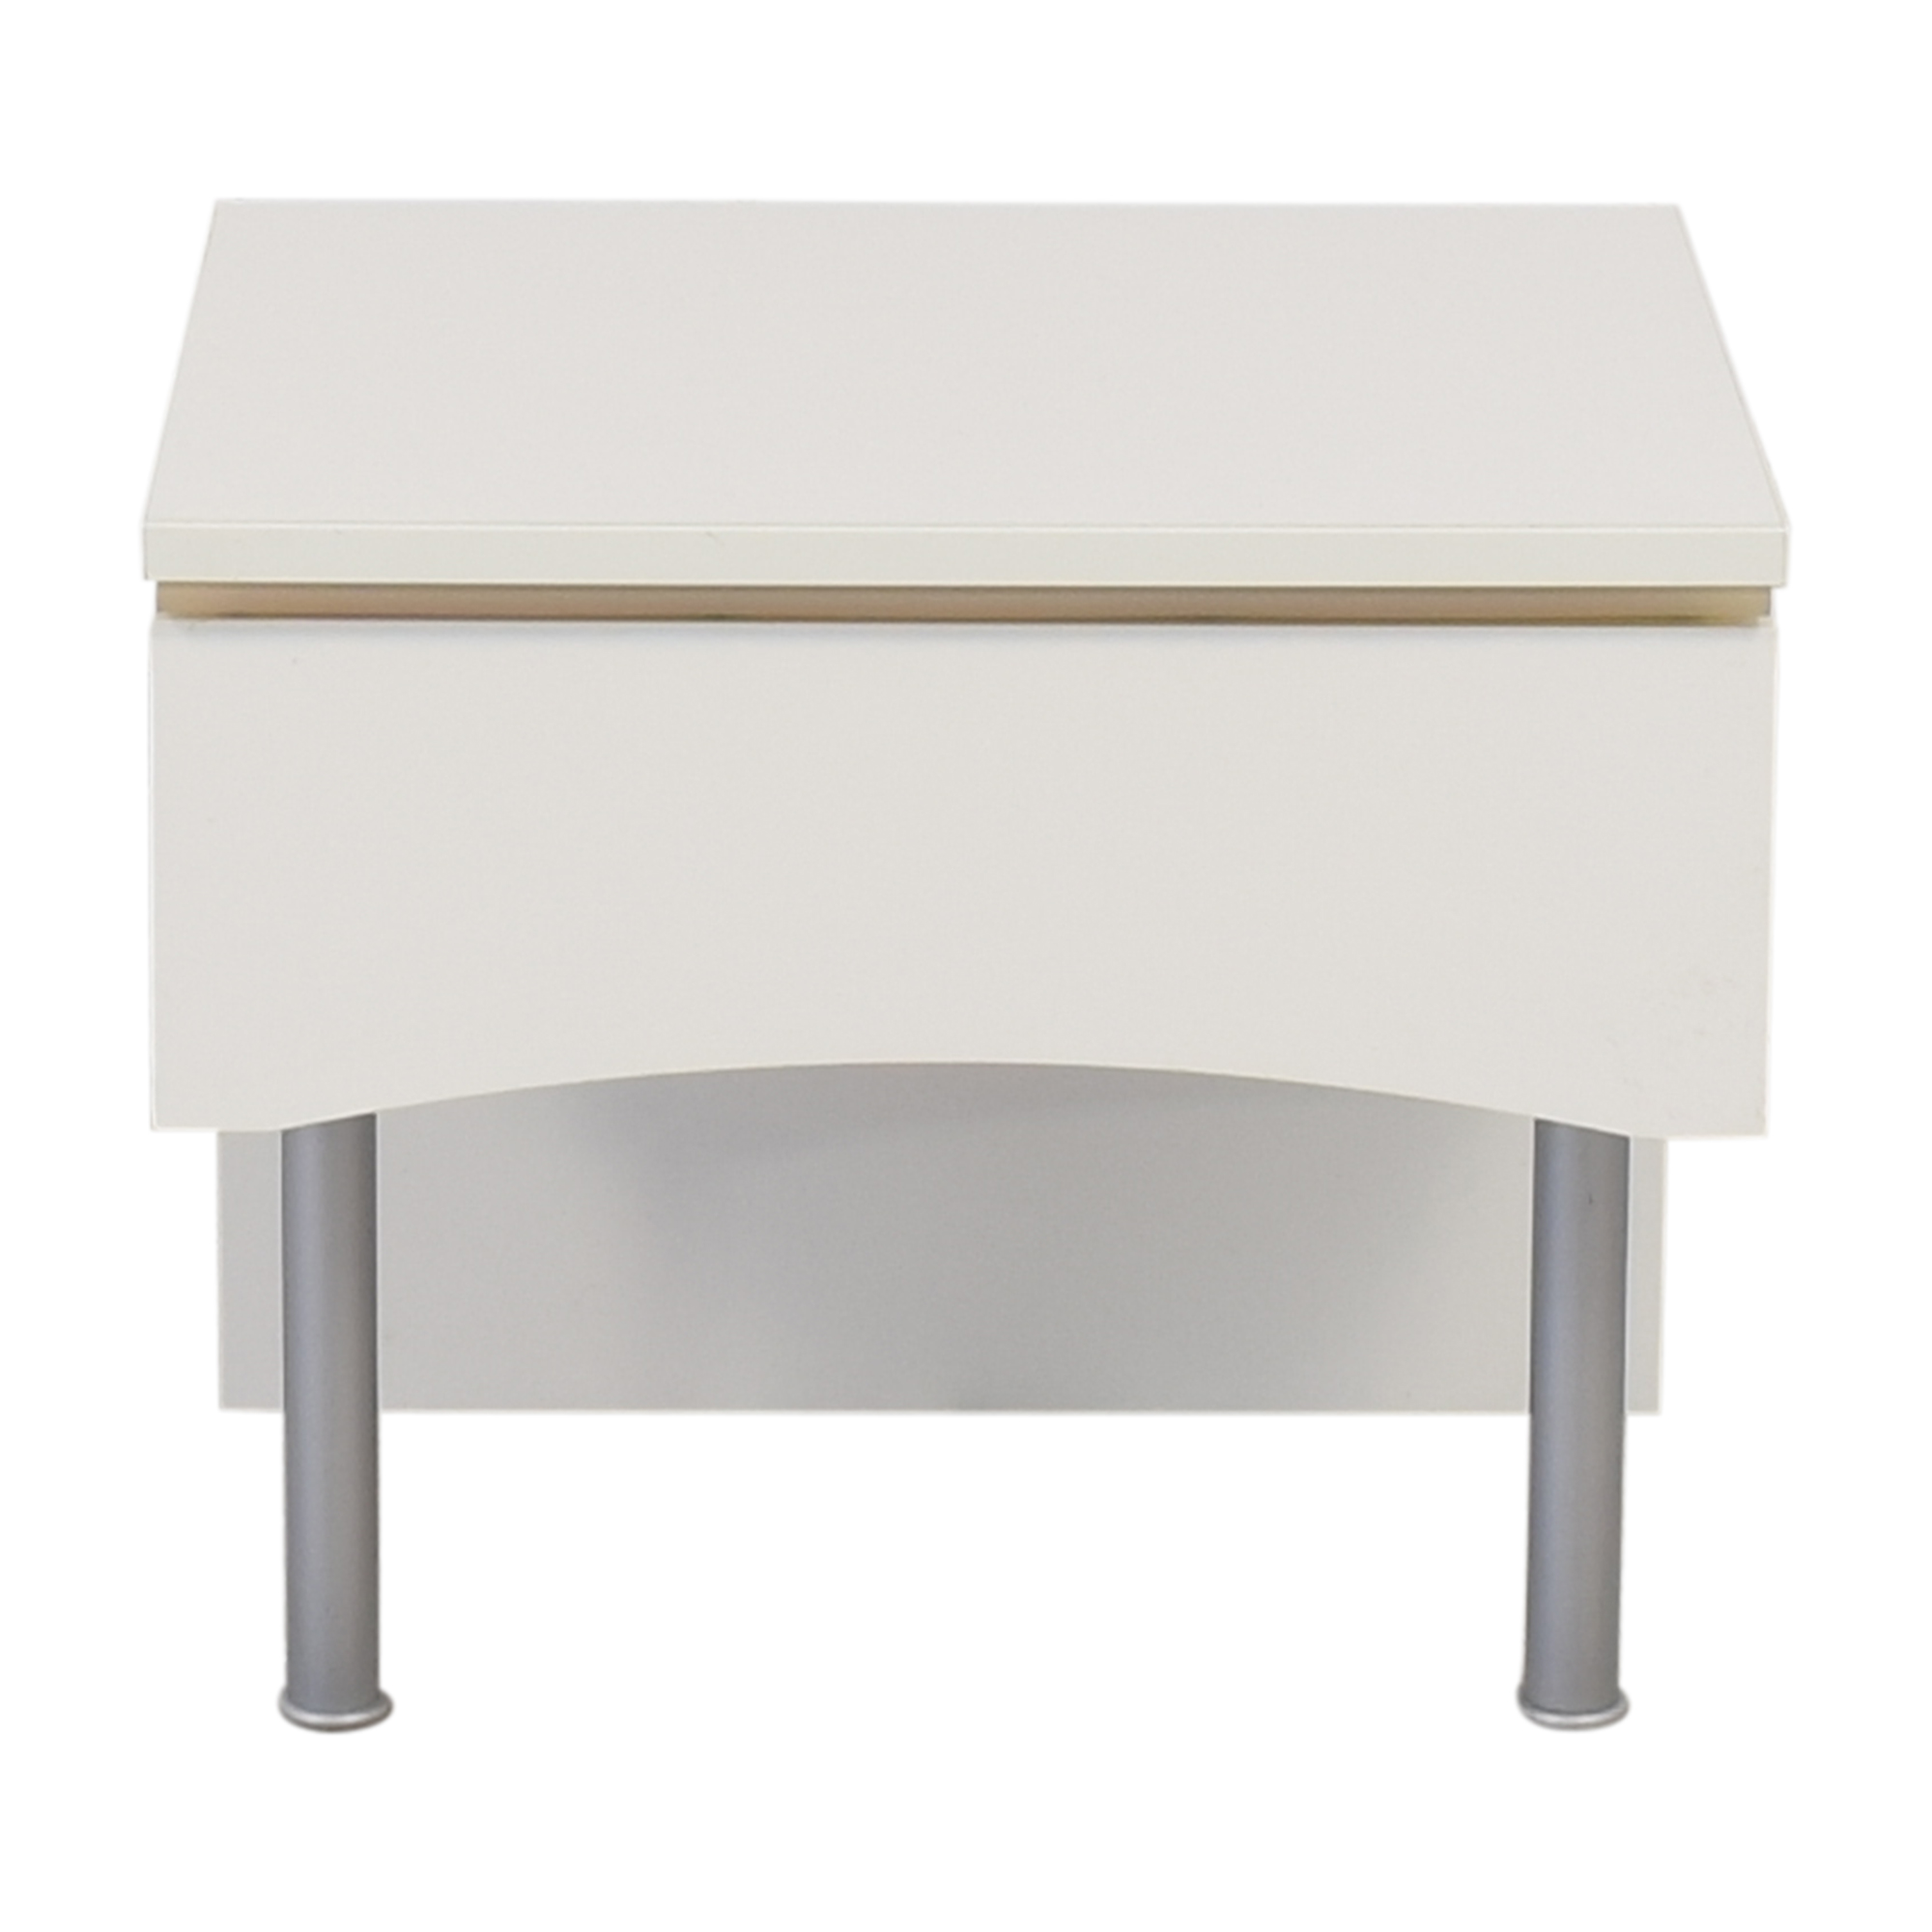 Gautier Low Nightstand / End Tables